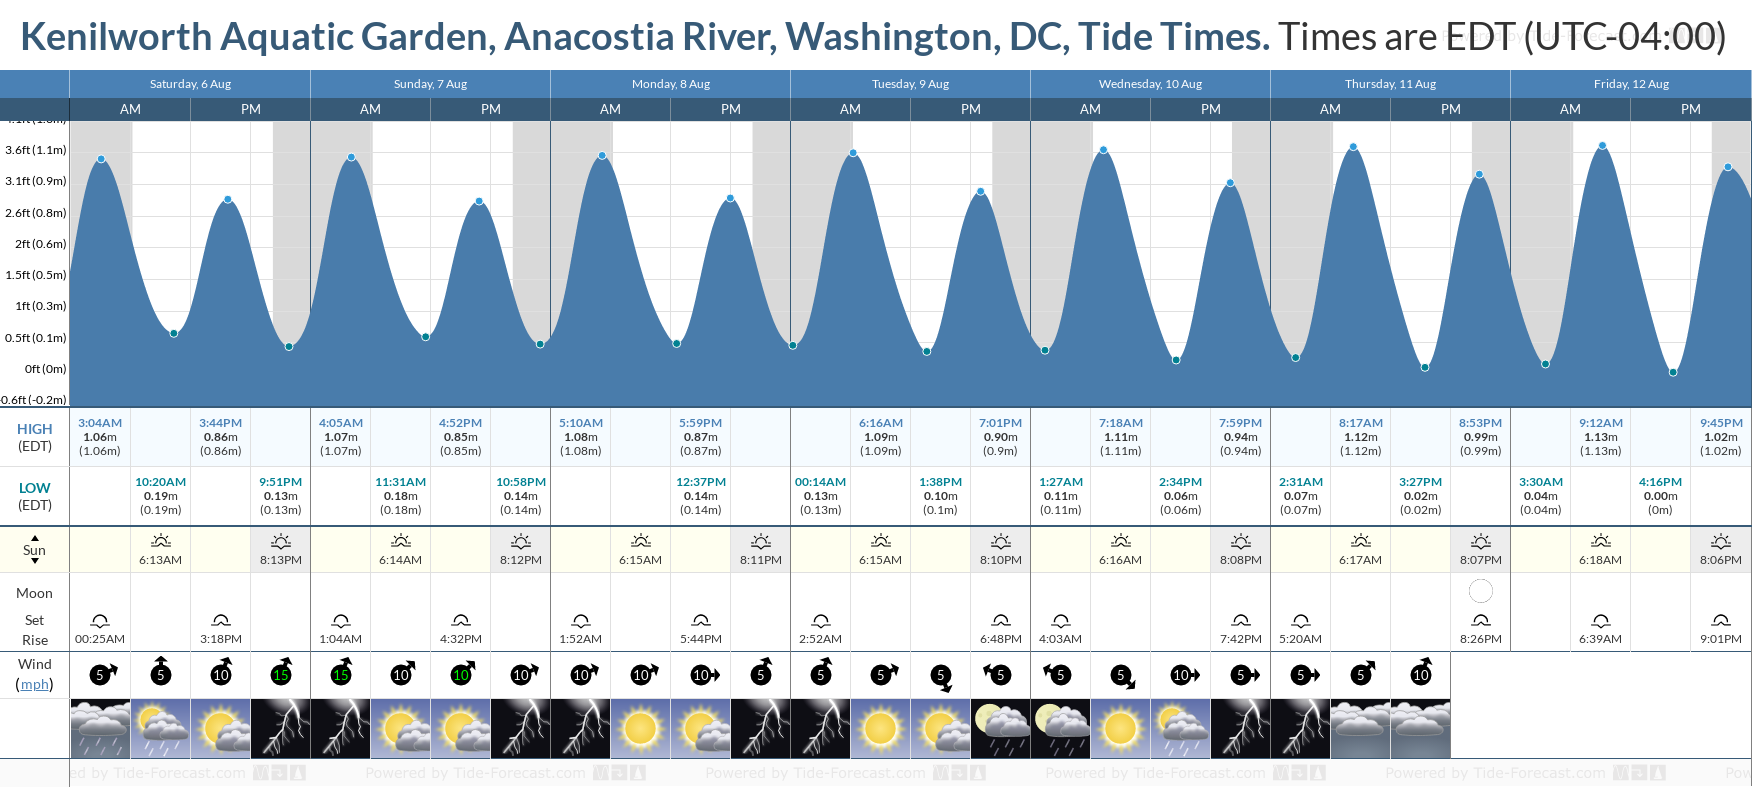 Kenilworth Aquatic Garden, Anacostia River, Washington, DC Tide Chart including high and low tide tide times for the next 7 days